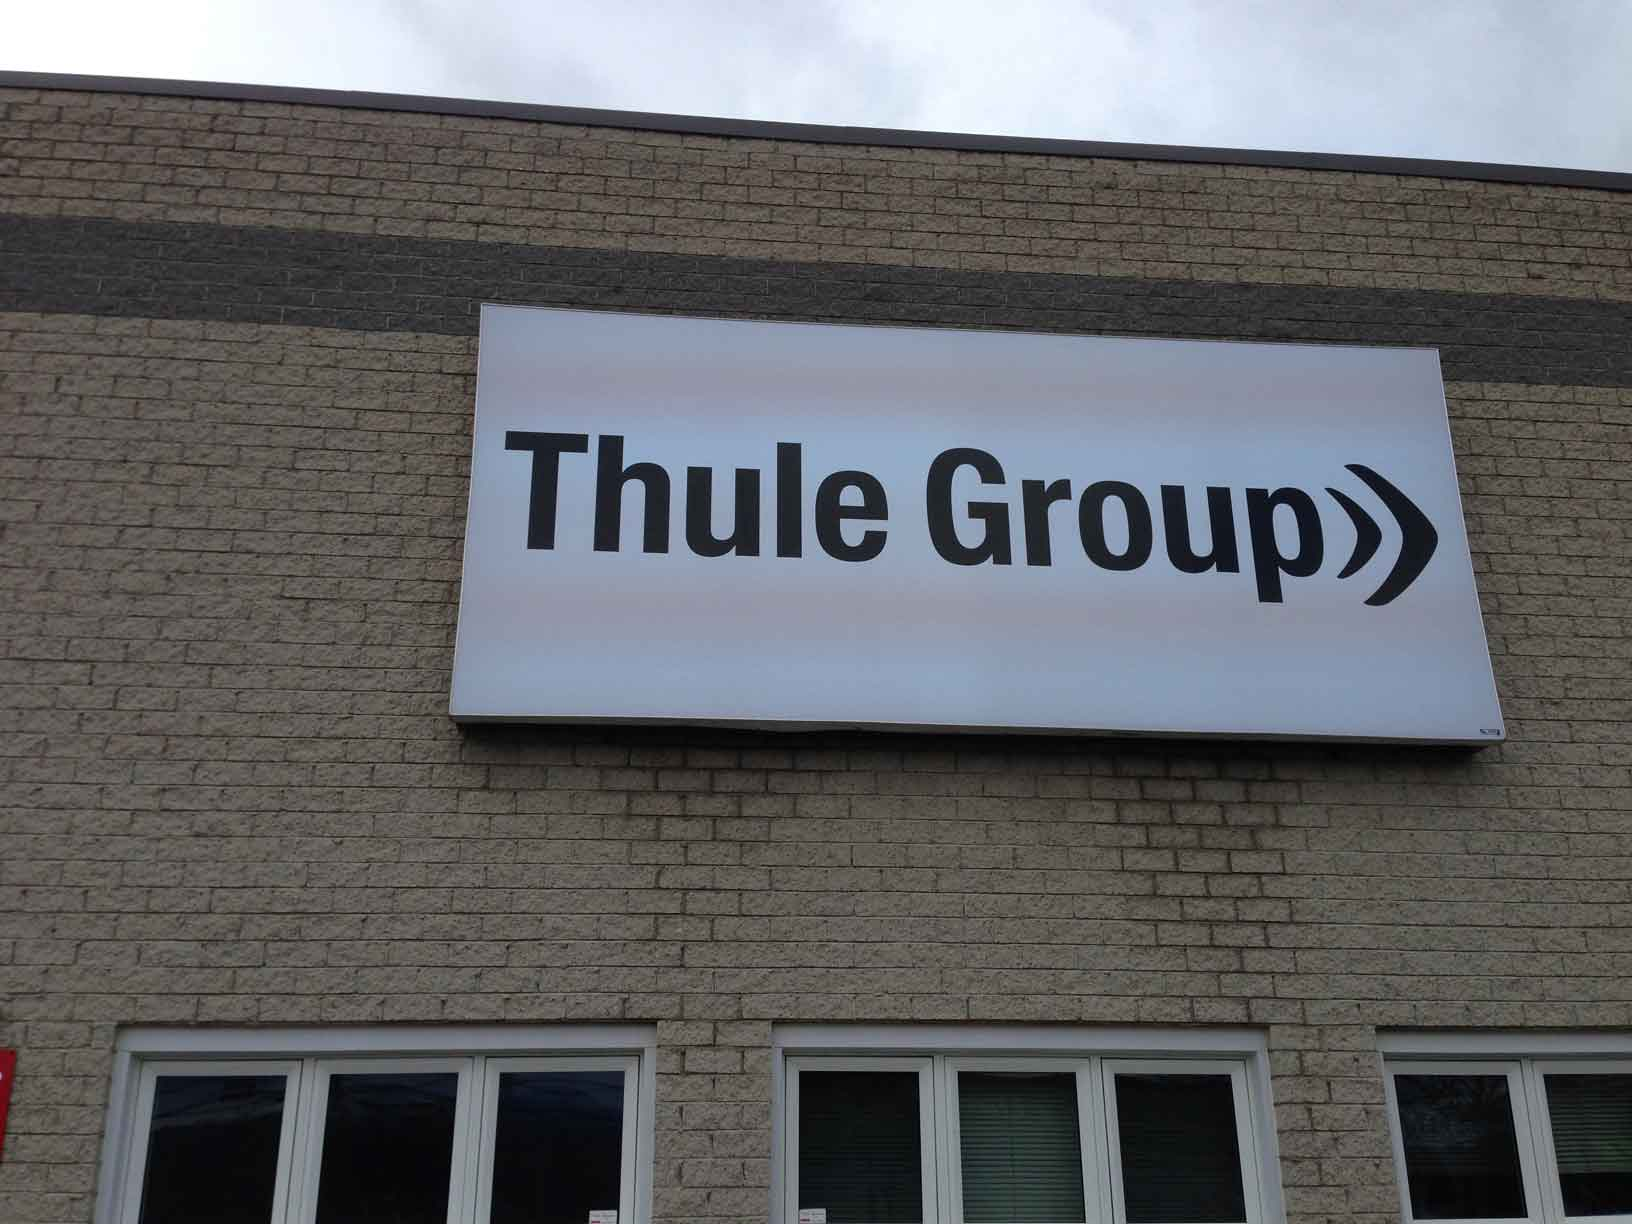 Thule group granby lettrage richard for Chambre commerce granby